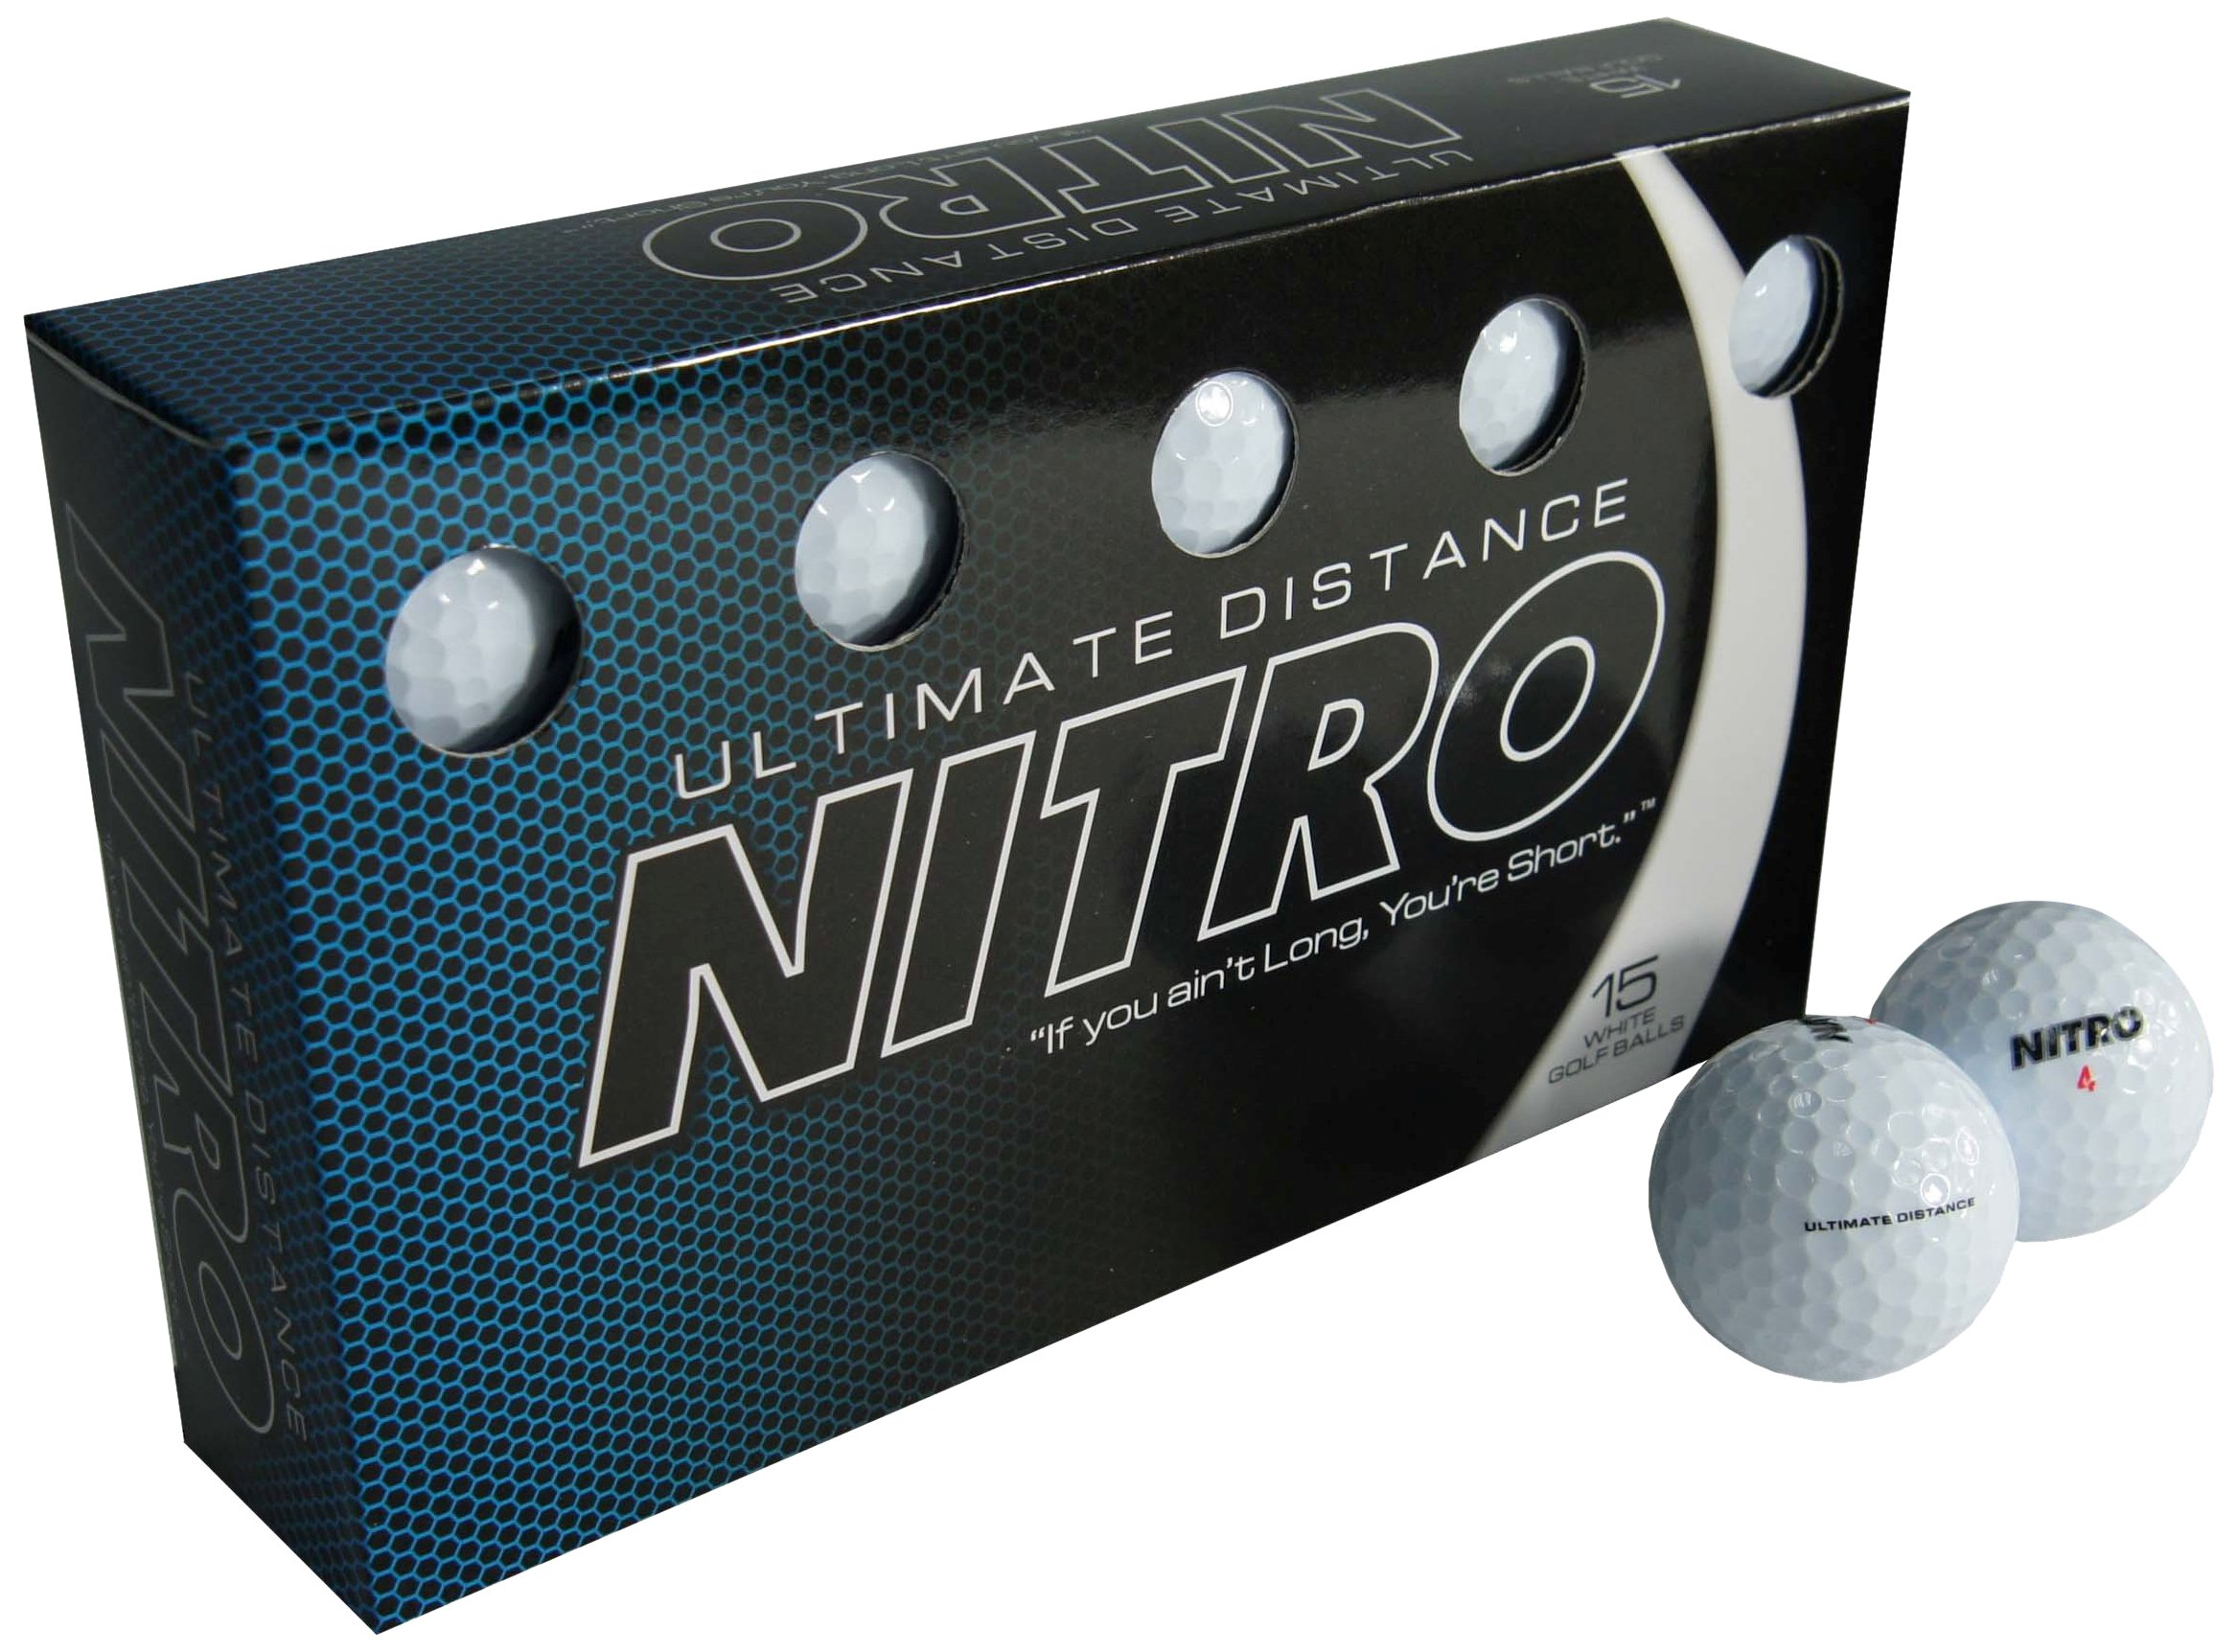 Nitro Long Distance High-Durability Golf Balls (15PK) All Levels Ultimate Distance Titanium Core High Velocity Great Stop & Sticking Ability Golf Balls USGA Approved-Total of 15-White by Nitro